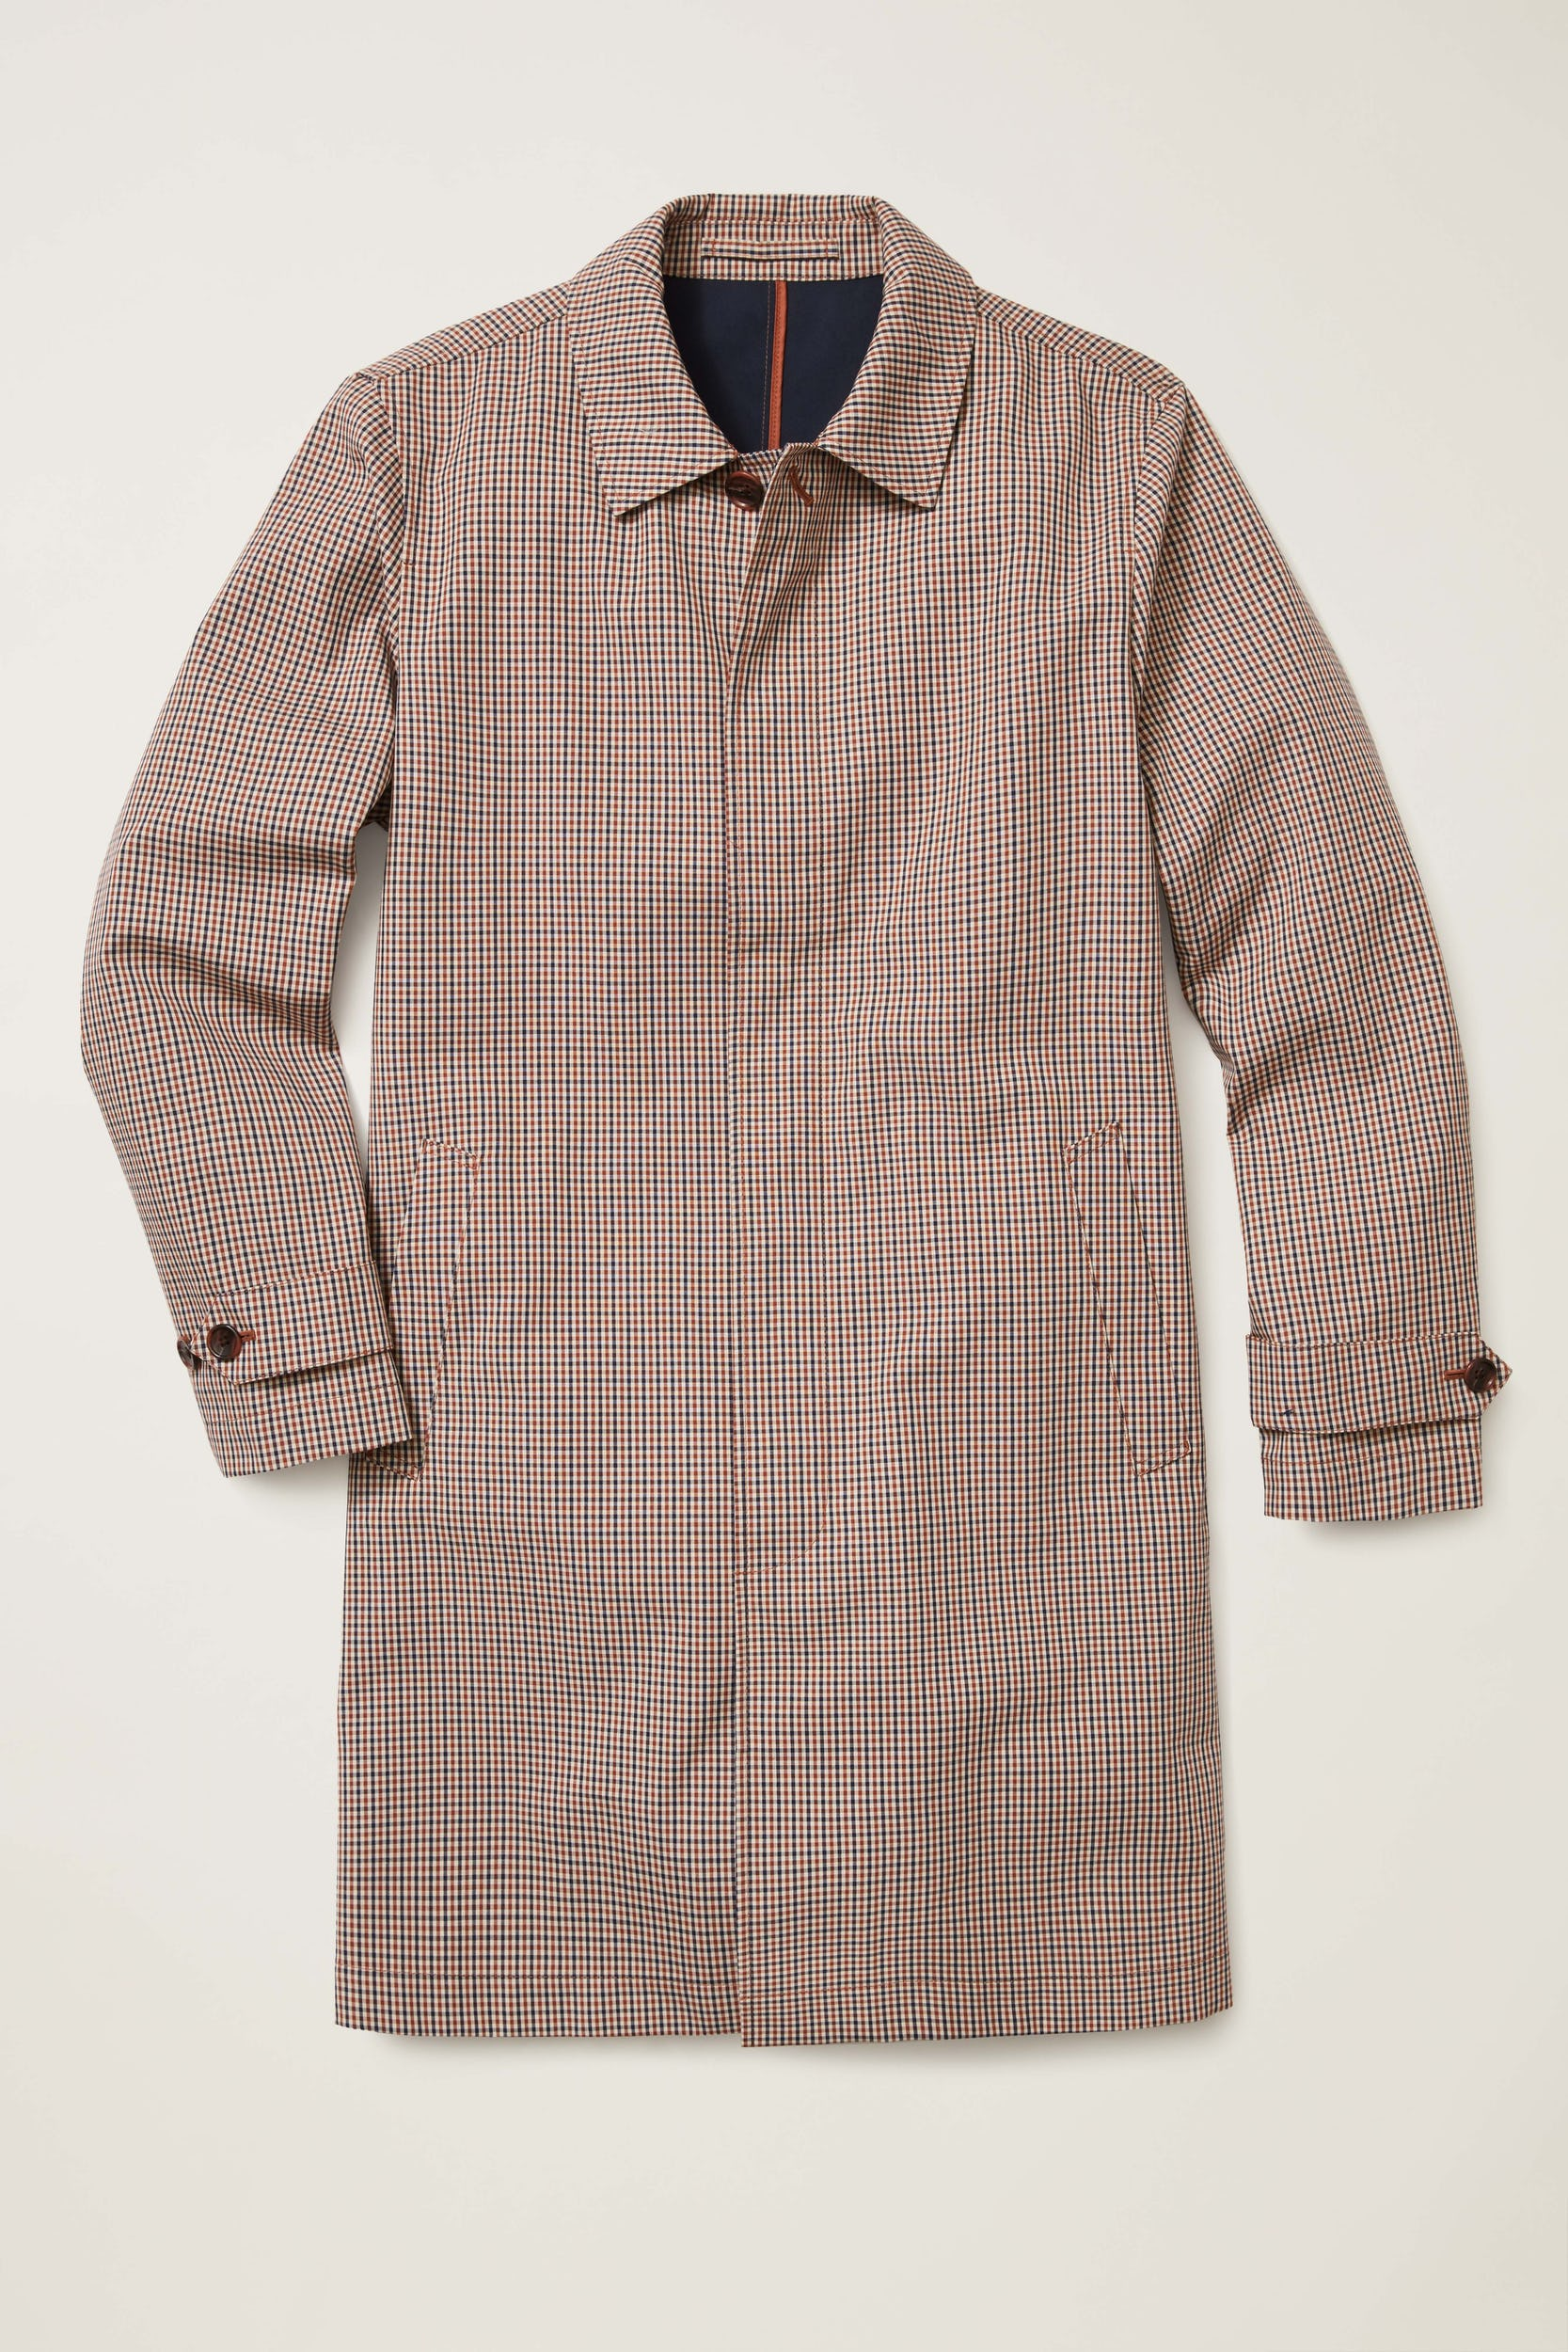 The elegant patterned Bonobos Mac Jacket is perfect for spring's rainy days.